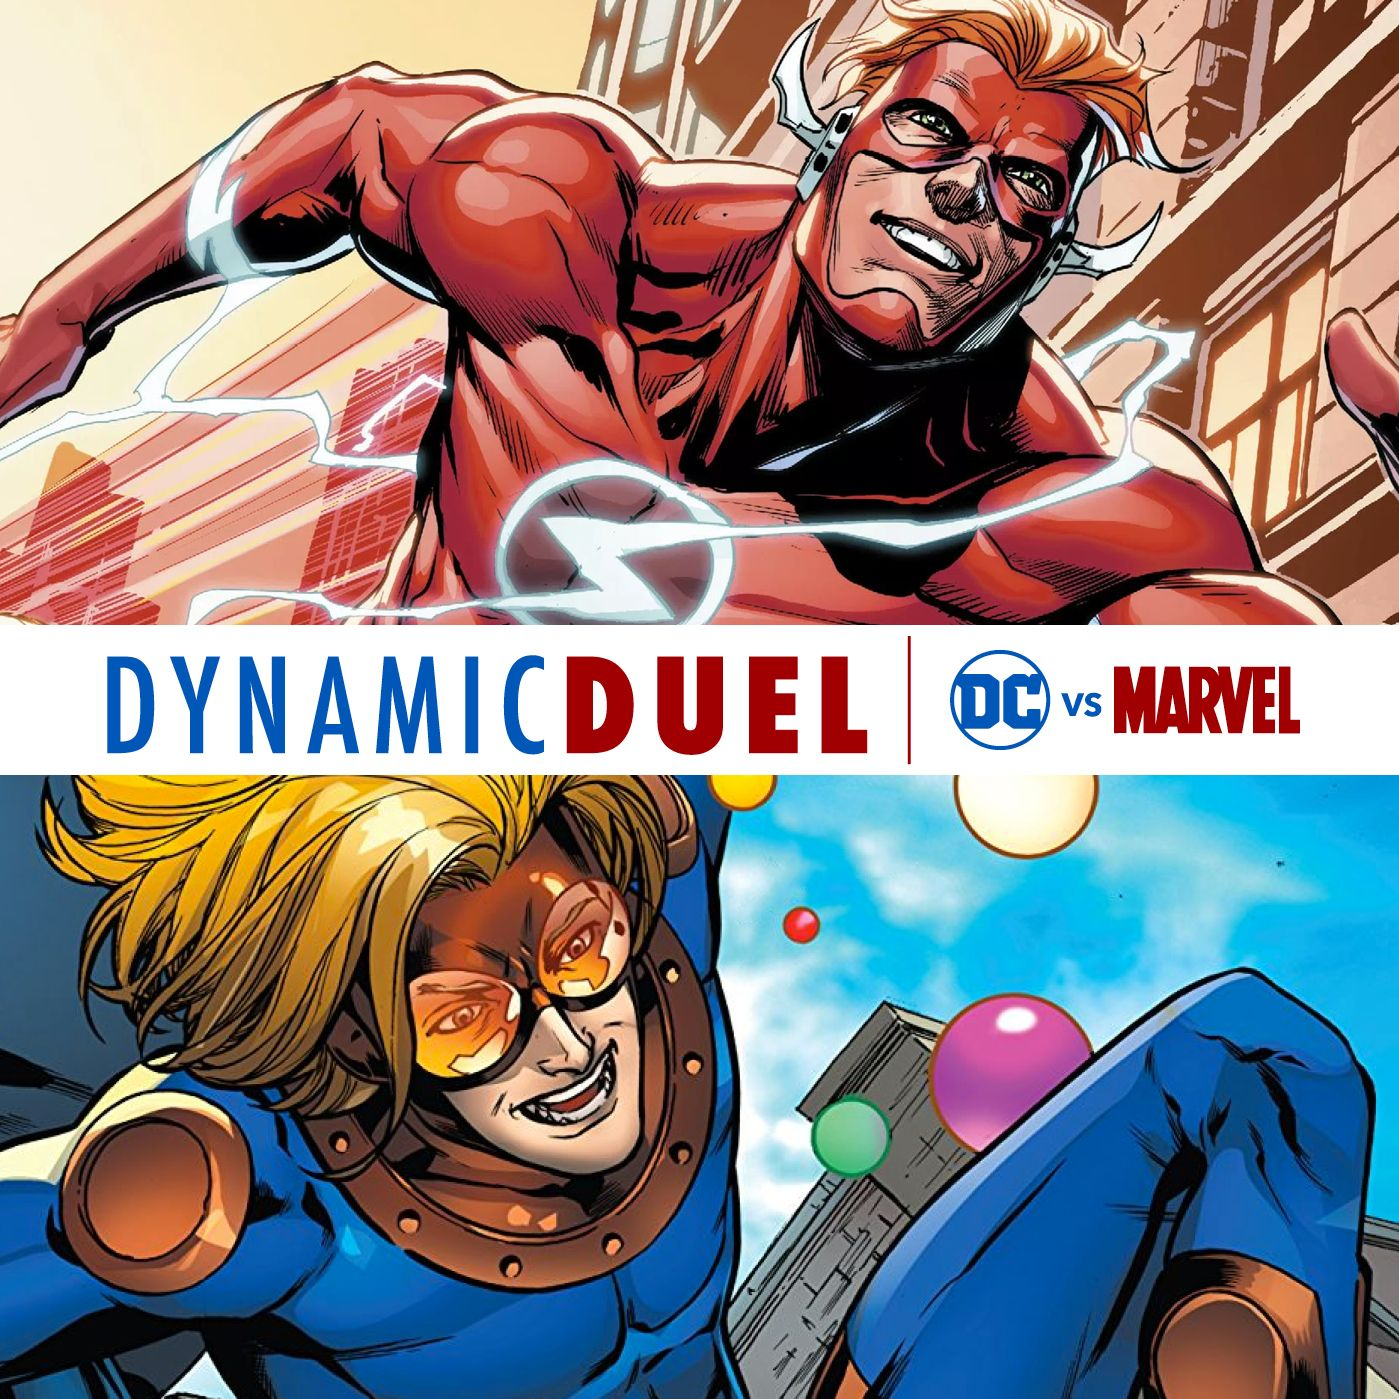 The Flash (Wally West) vs Speedball